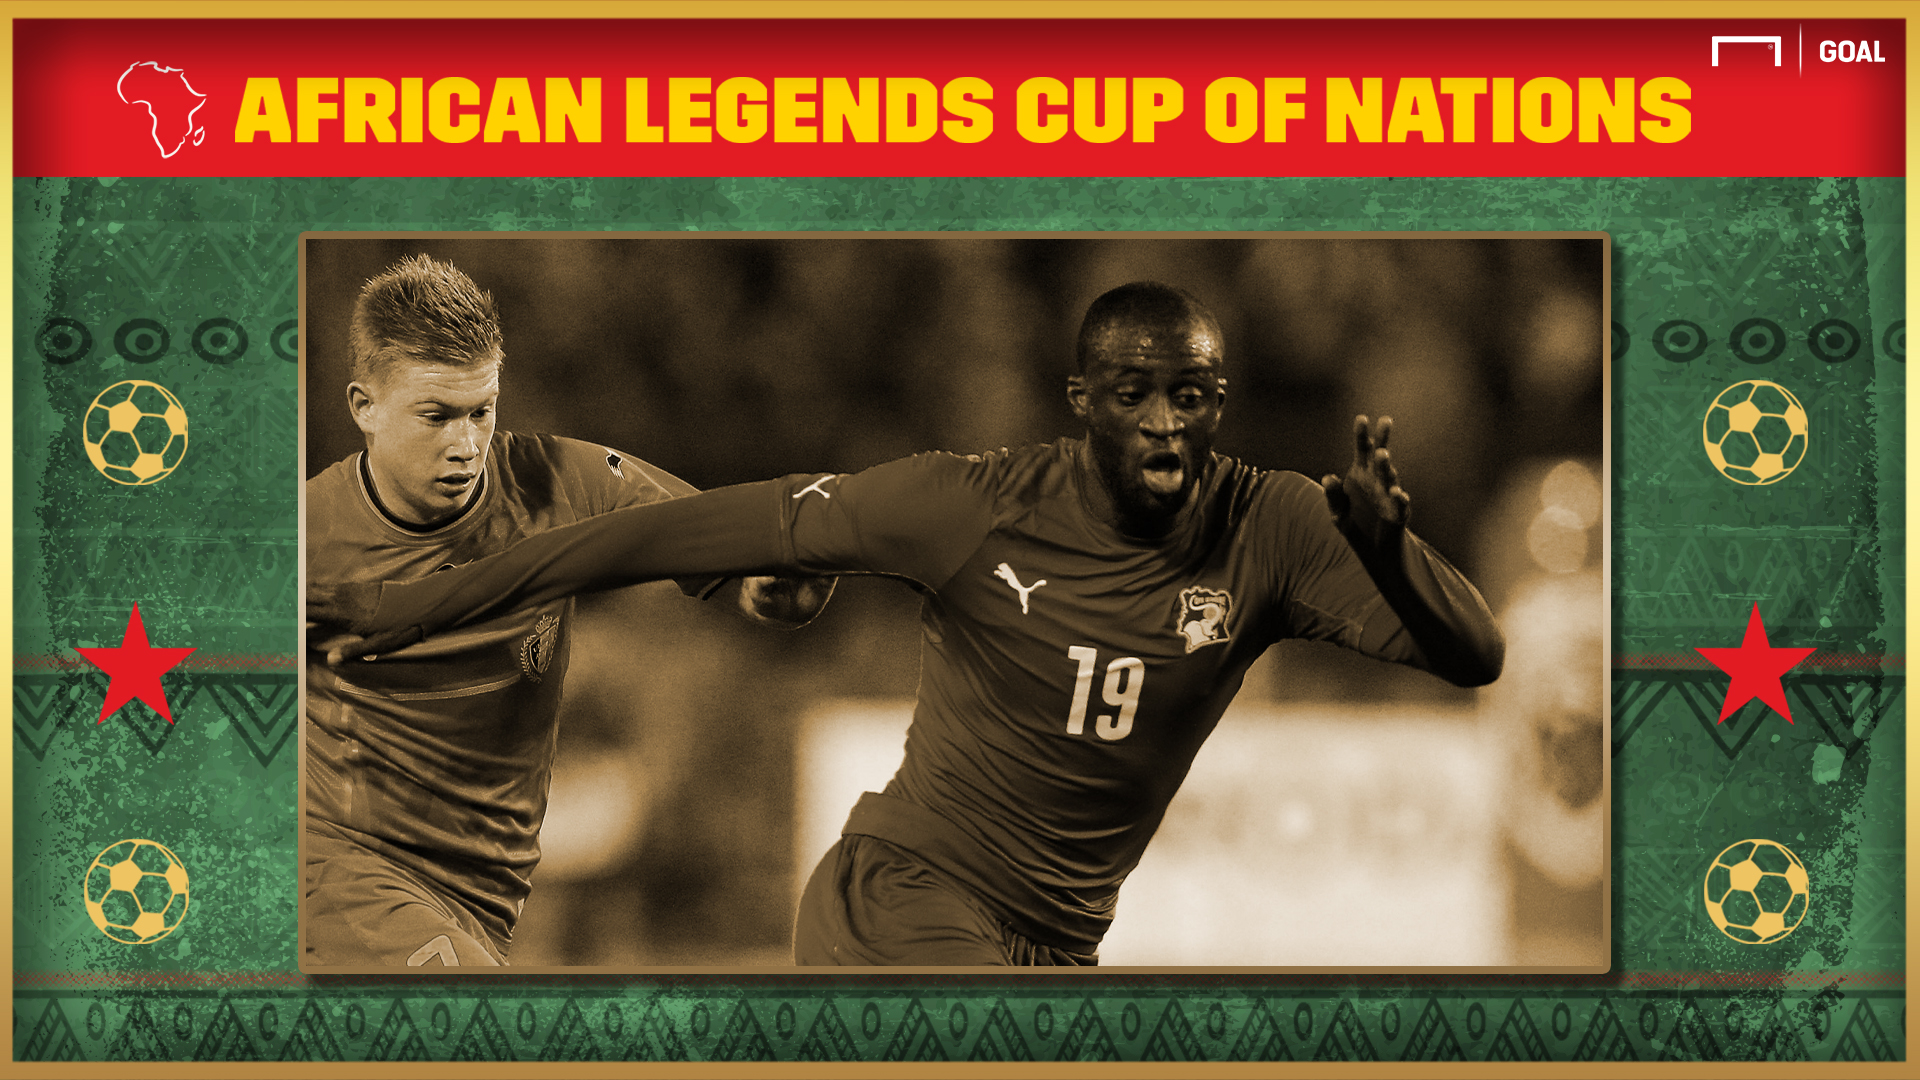 African Legends Cup of Nations: Is Eto'o vs Yaya too close to call?